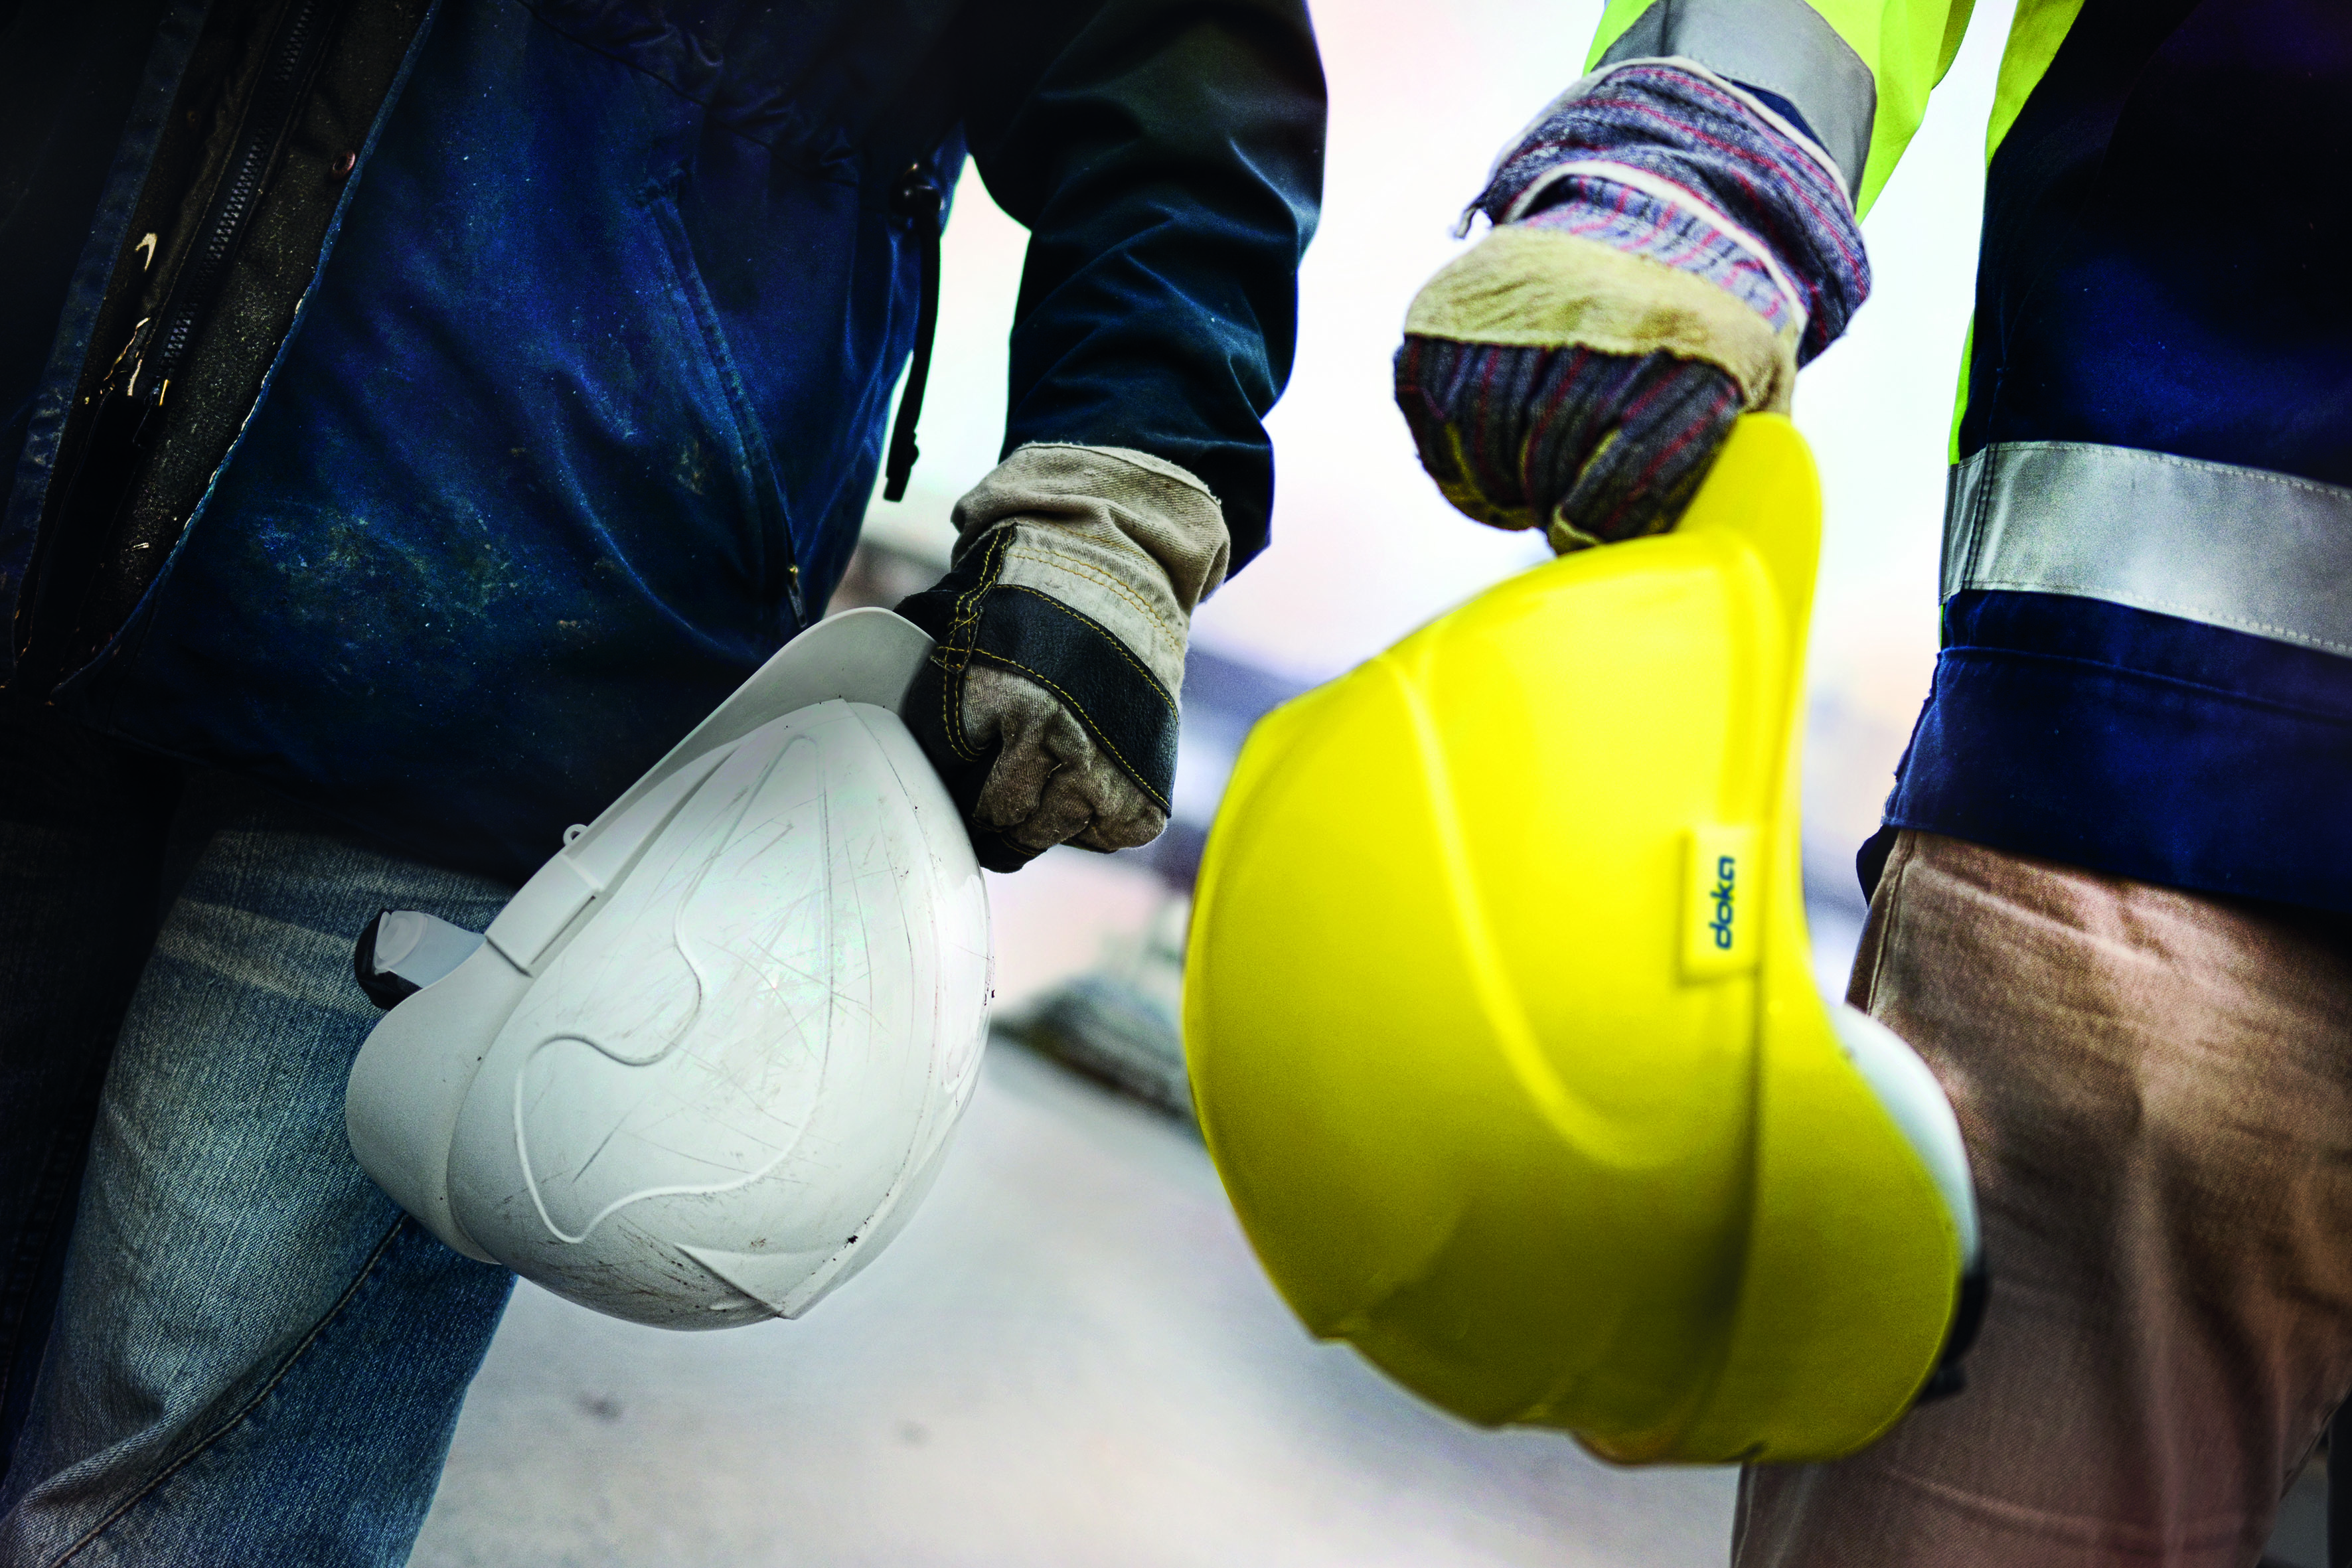 As a partner for construction projects, Doka understands safety holistically. It encompasses the Doka Safety Systems and covers a wide range: from product development to safety consulting and a comprehensive range of services. Copyright: Doka